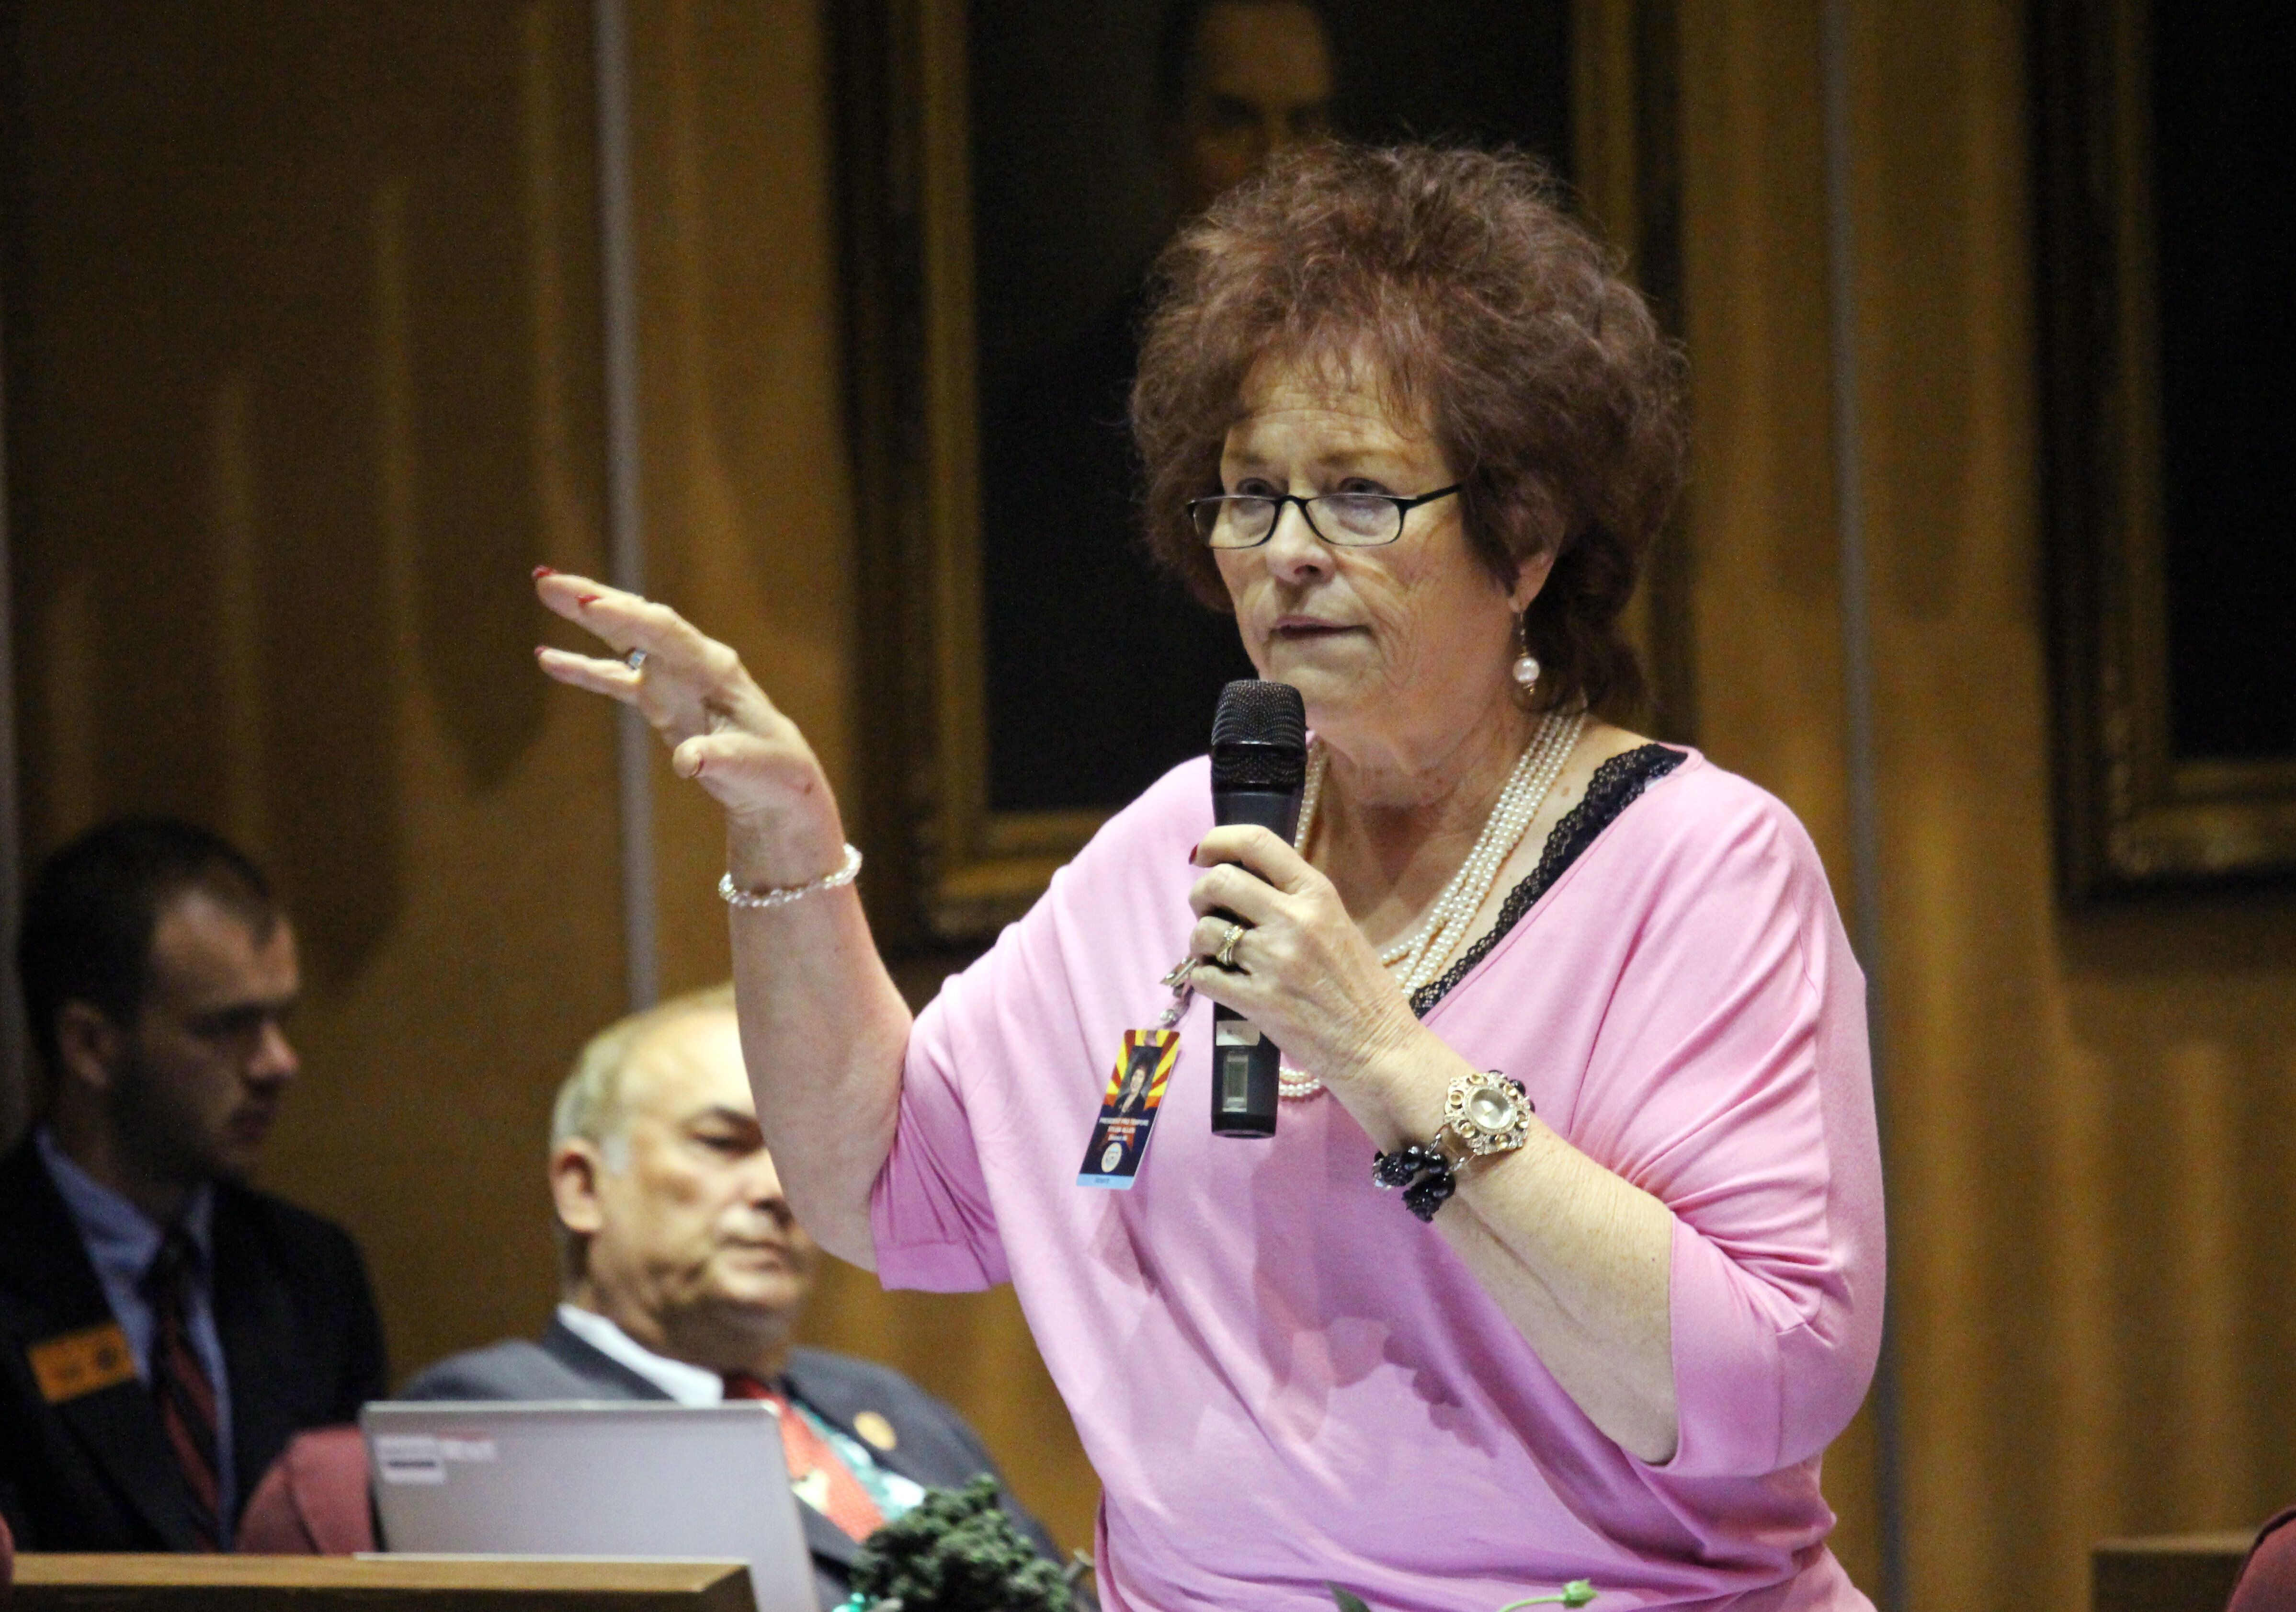 Republican Arizona state Sen. Sylvia Allen explains her opposition to a children's health insurance bill that was headed to approval on Friday, May 6, 2016 at the Capitol in Phoenix. The passage and Republican Gov. Doug Ducey's pledge to immediately sign it means the state will join 49 others with a version of the federal Children's Health Insurance Program.(AP Photo/Bob Christie)